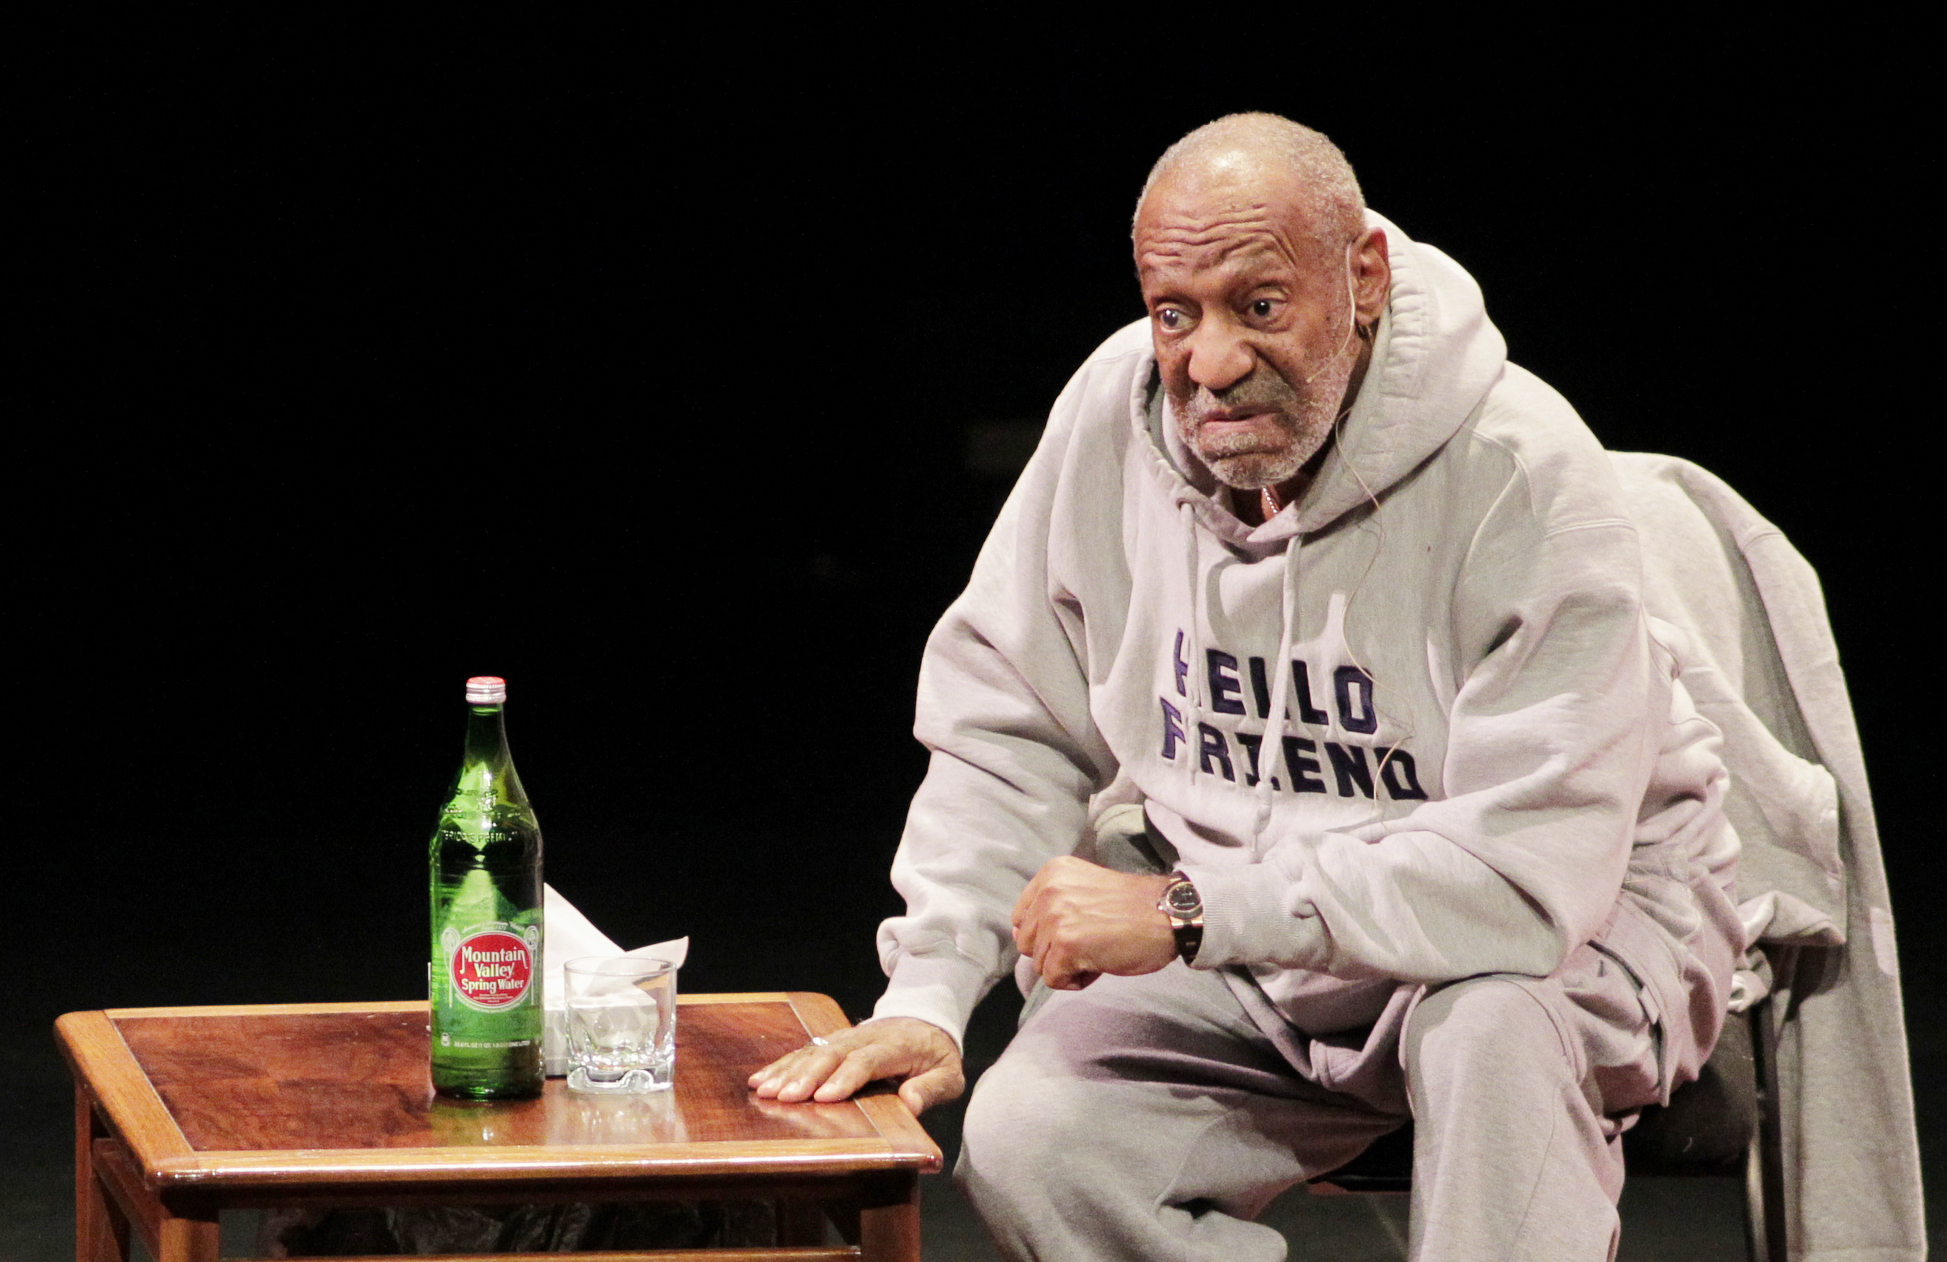 Comedian Bill Cosby performs at The Temple Buell Theatre in Denver, Colo. on Jan. 17, 2015.